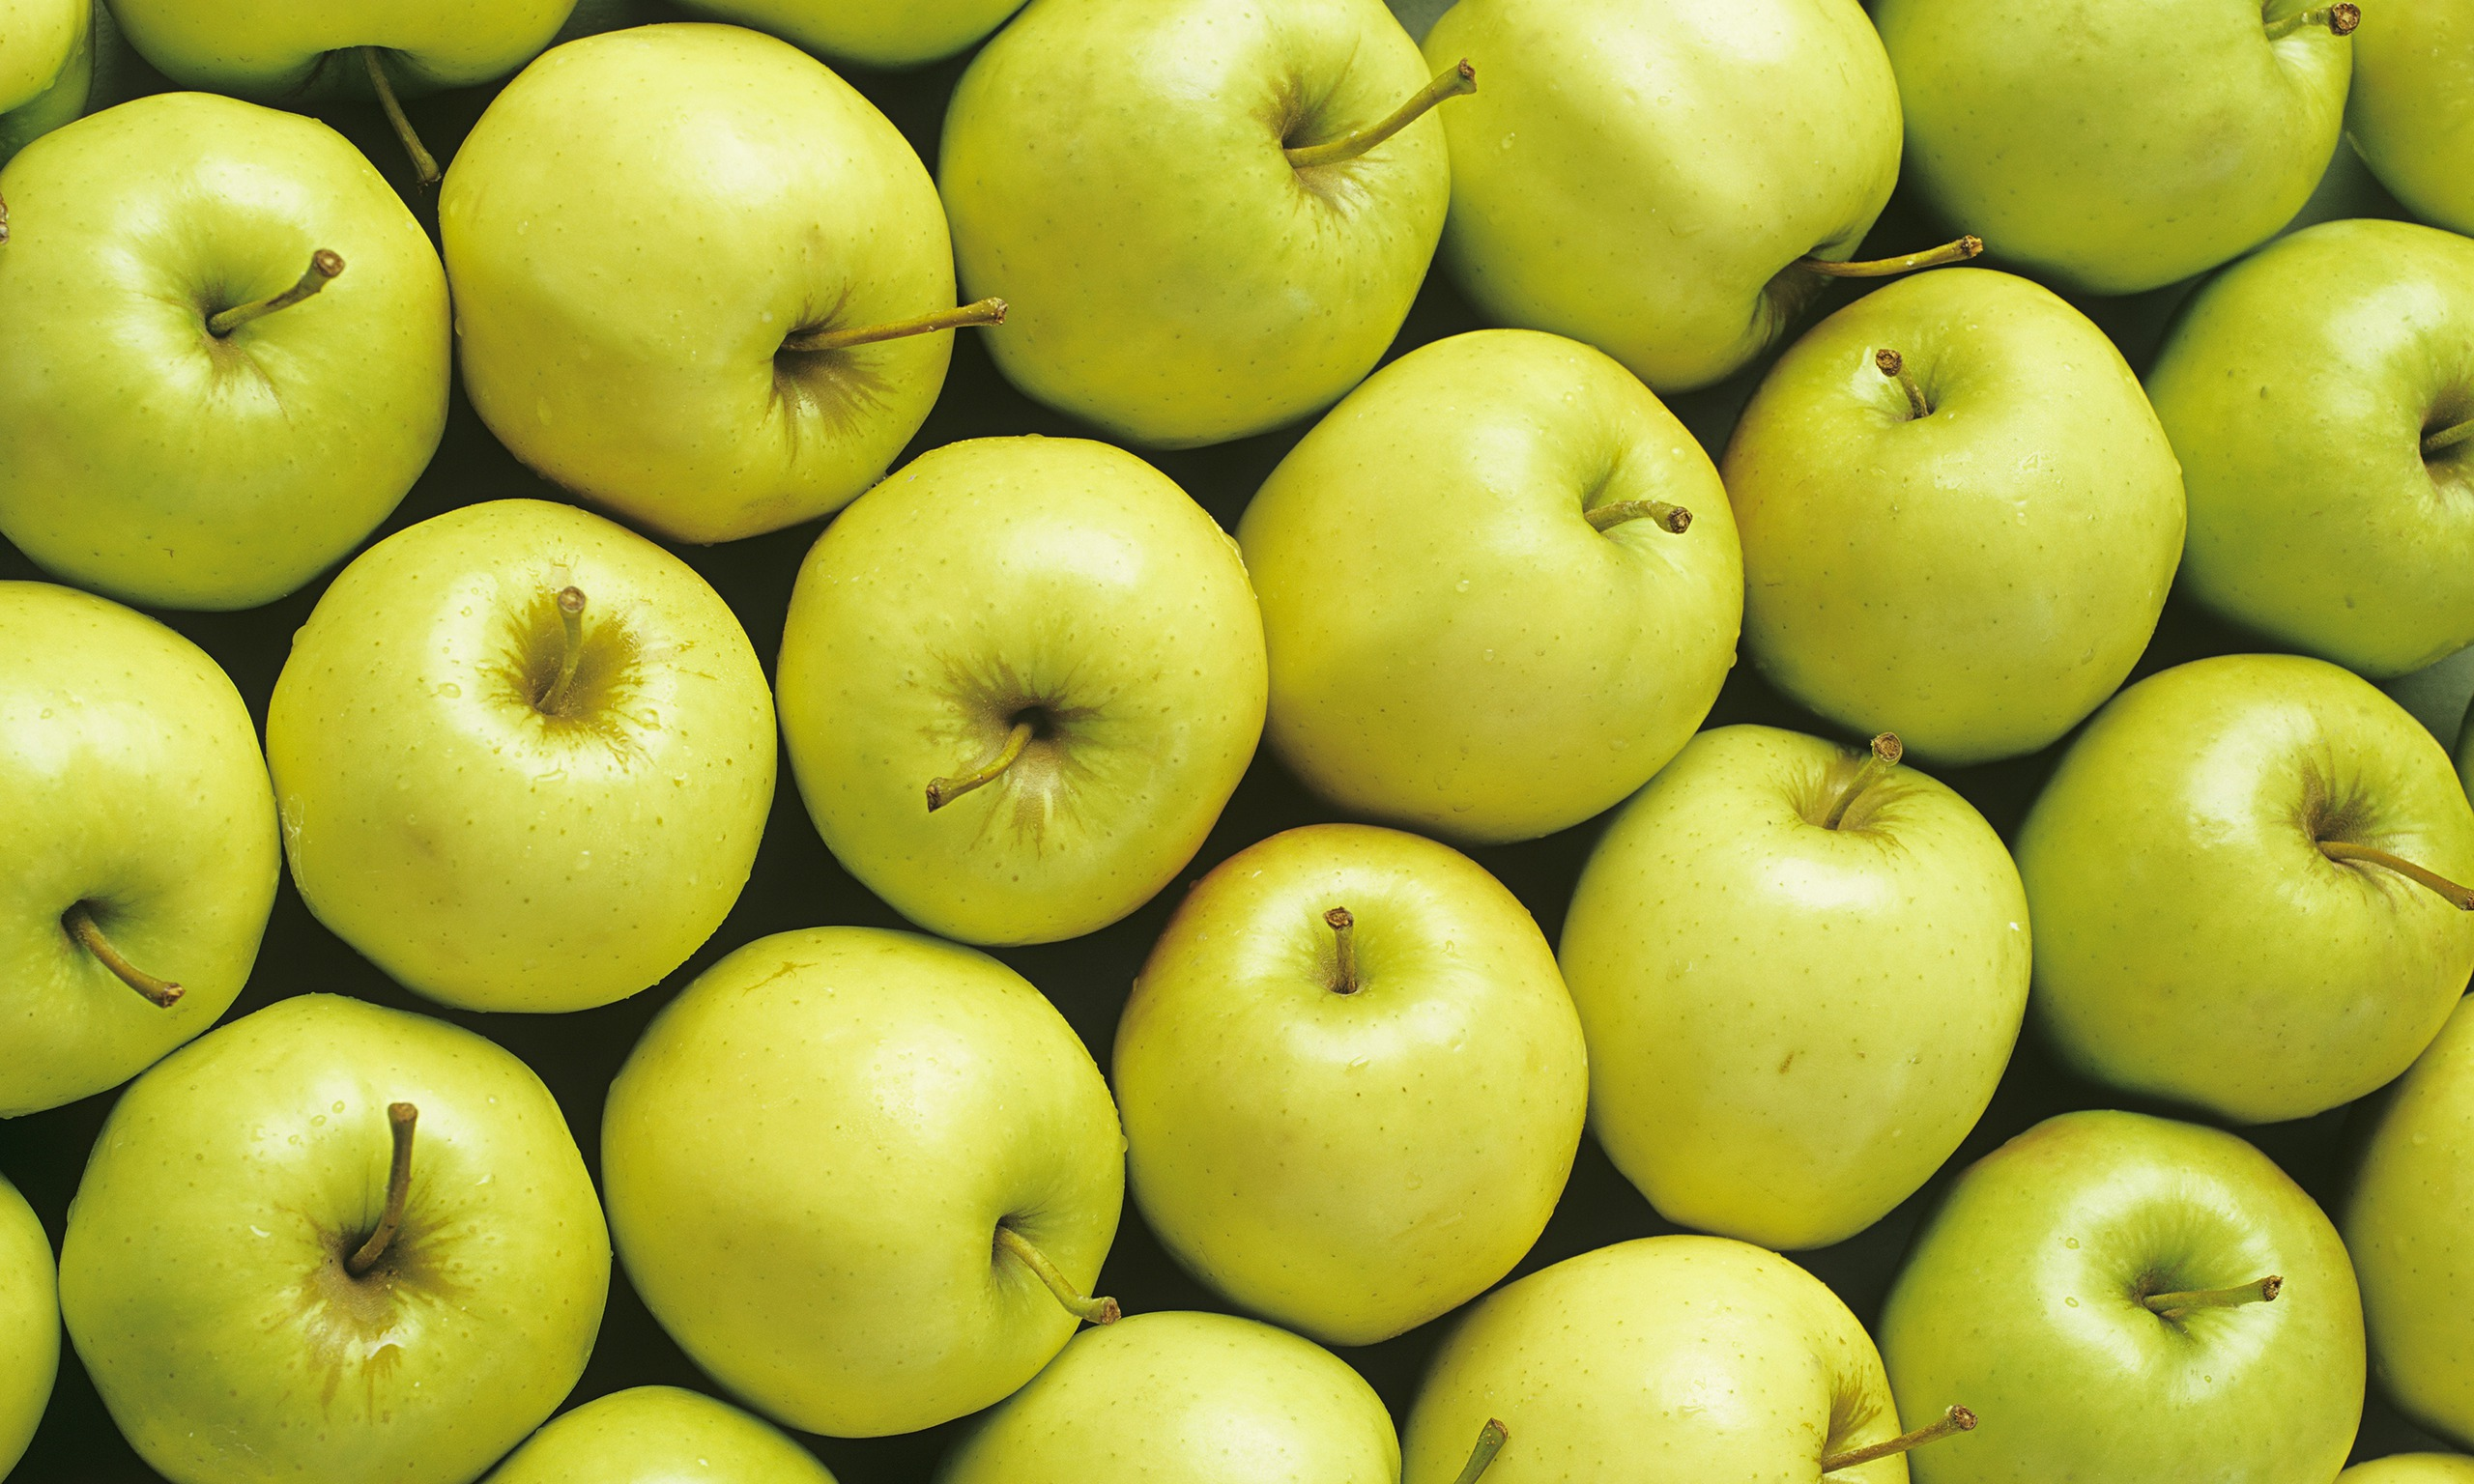 asda looks underground for electricity saving apple storage business the guardian. Black Bedroom Furniture Sets. Home Design Ideas